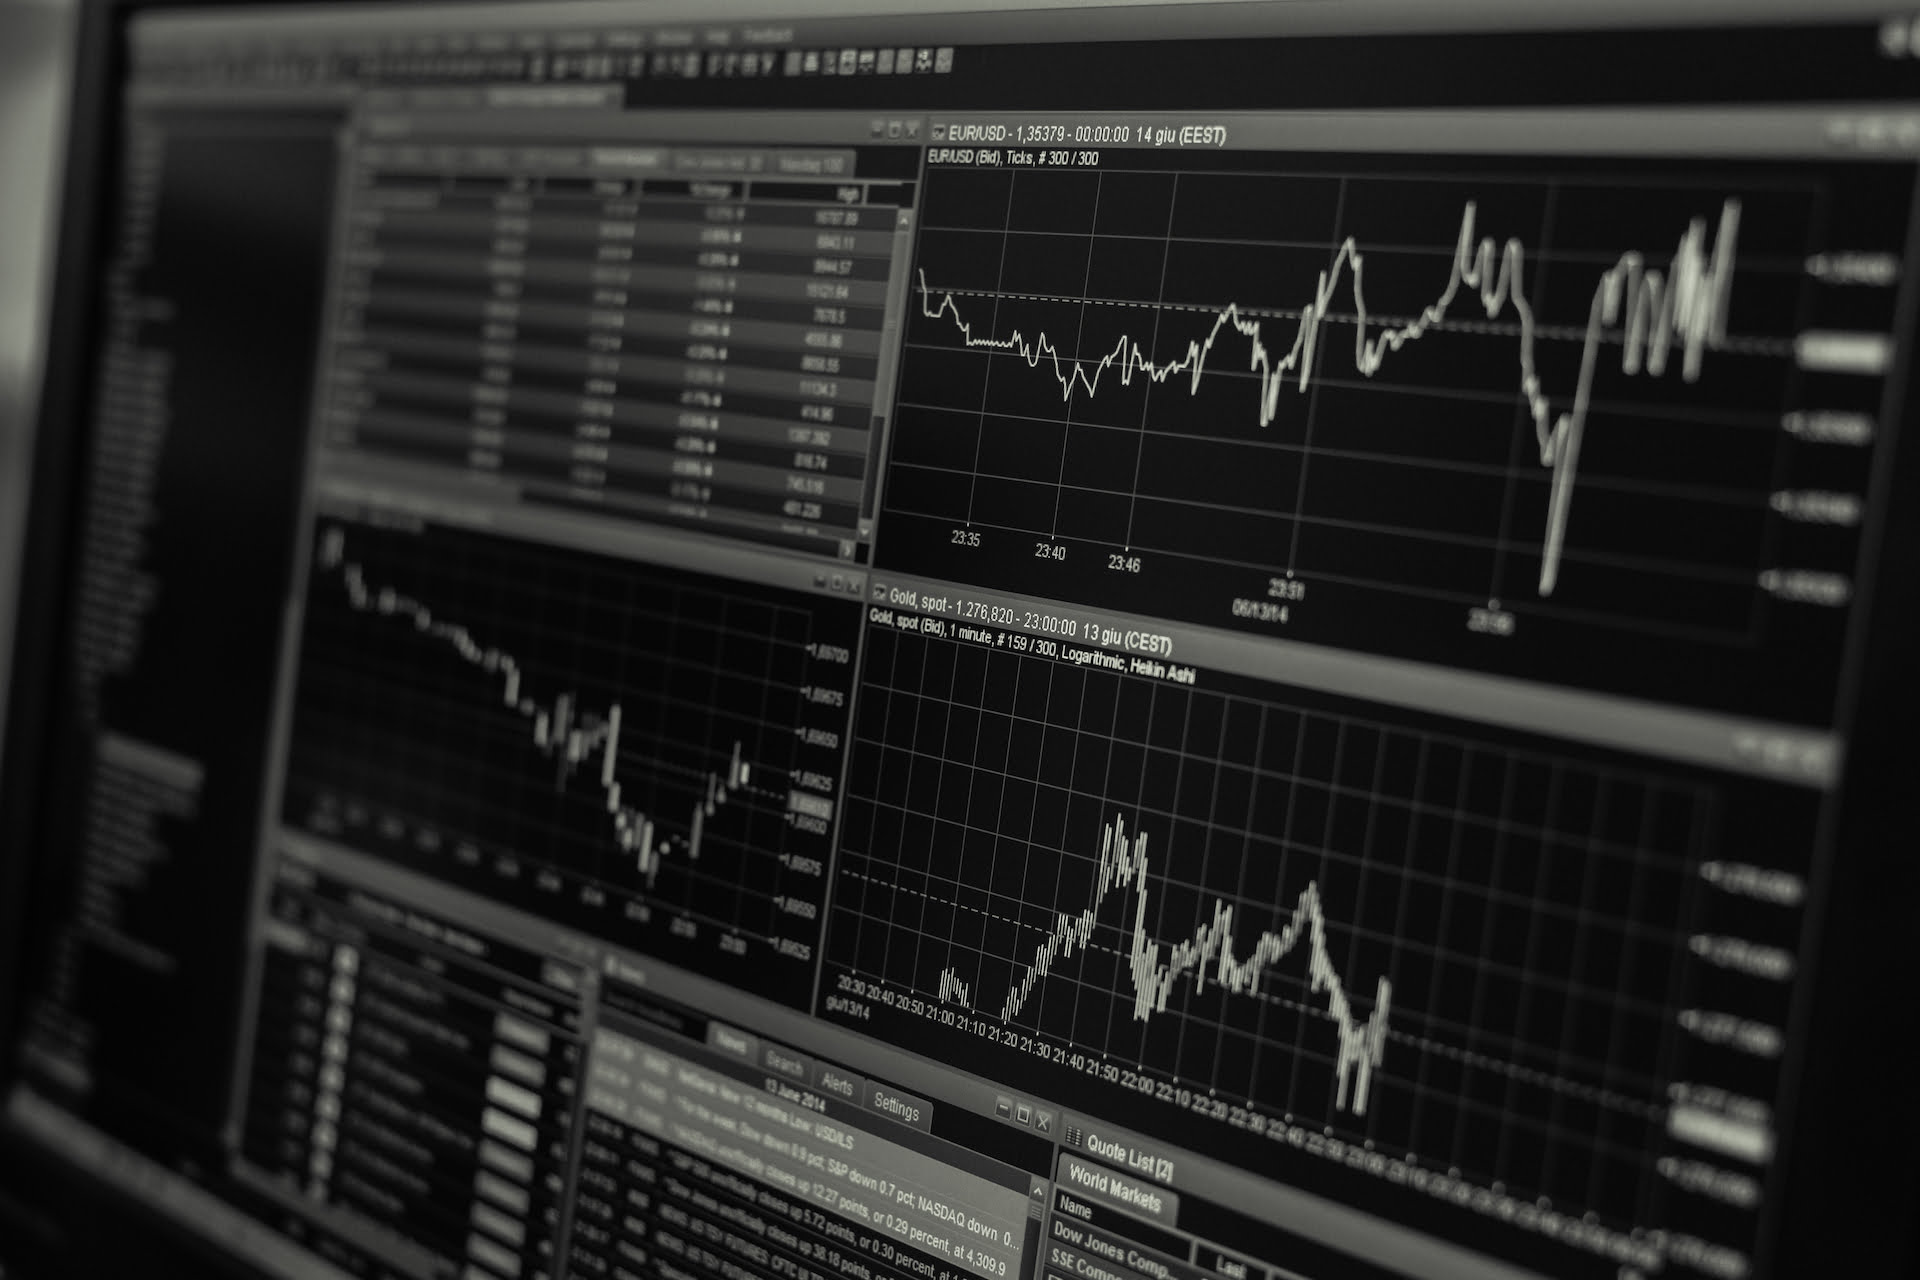 Stock trading monitor (black and white)